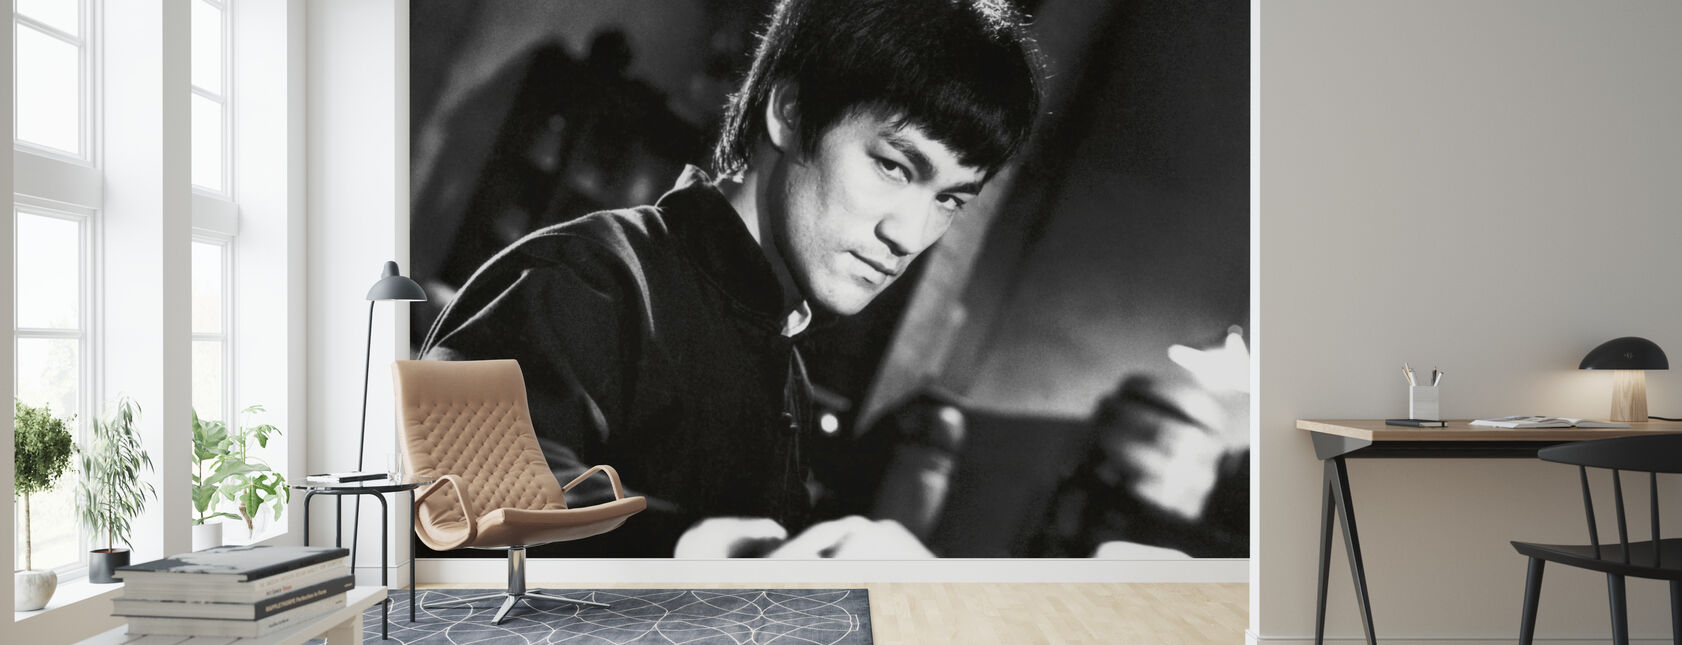 Fighting Stance - Bruce Lee - Wallpaper - Living Room